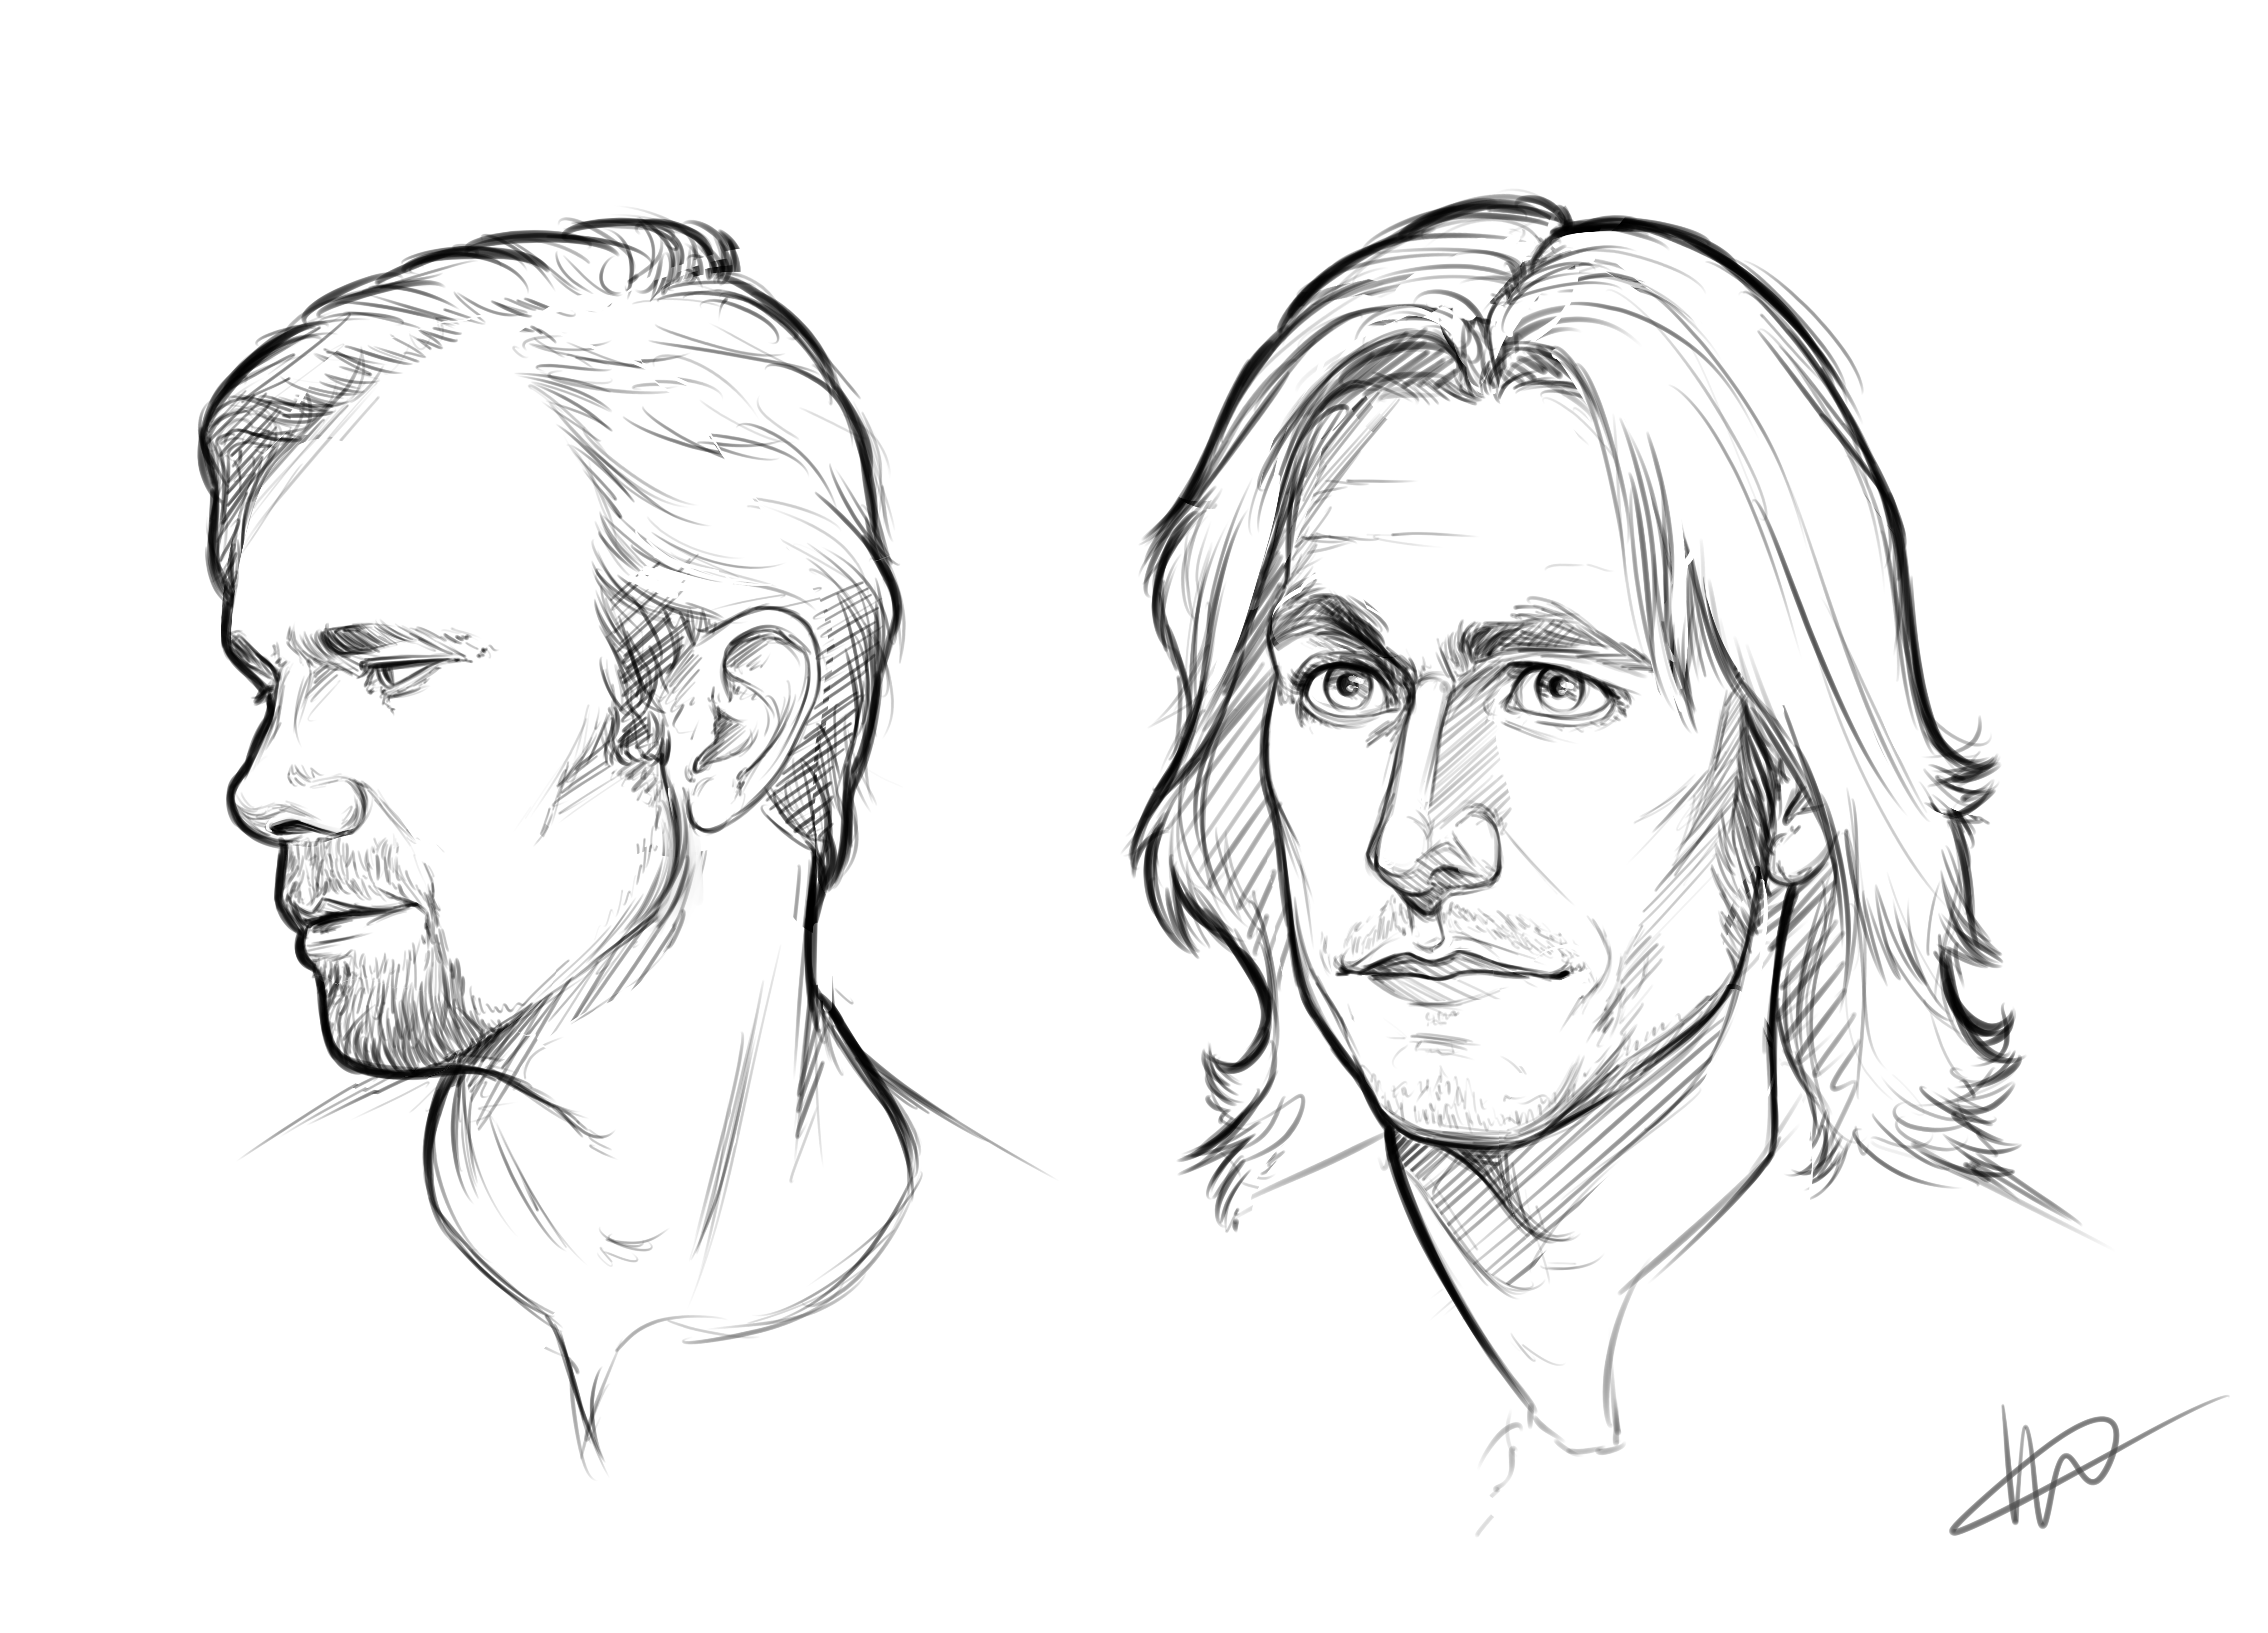 5000x3600 No Spoilers] Some Practise Sketchingdrawing To Get Familiar